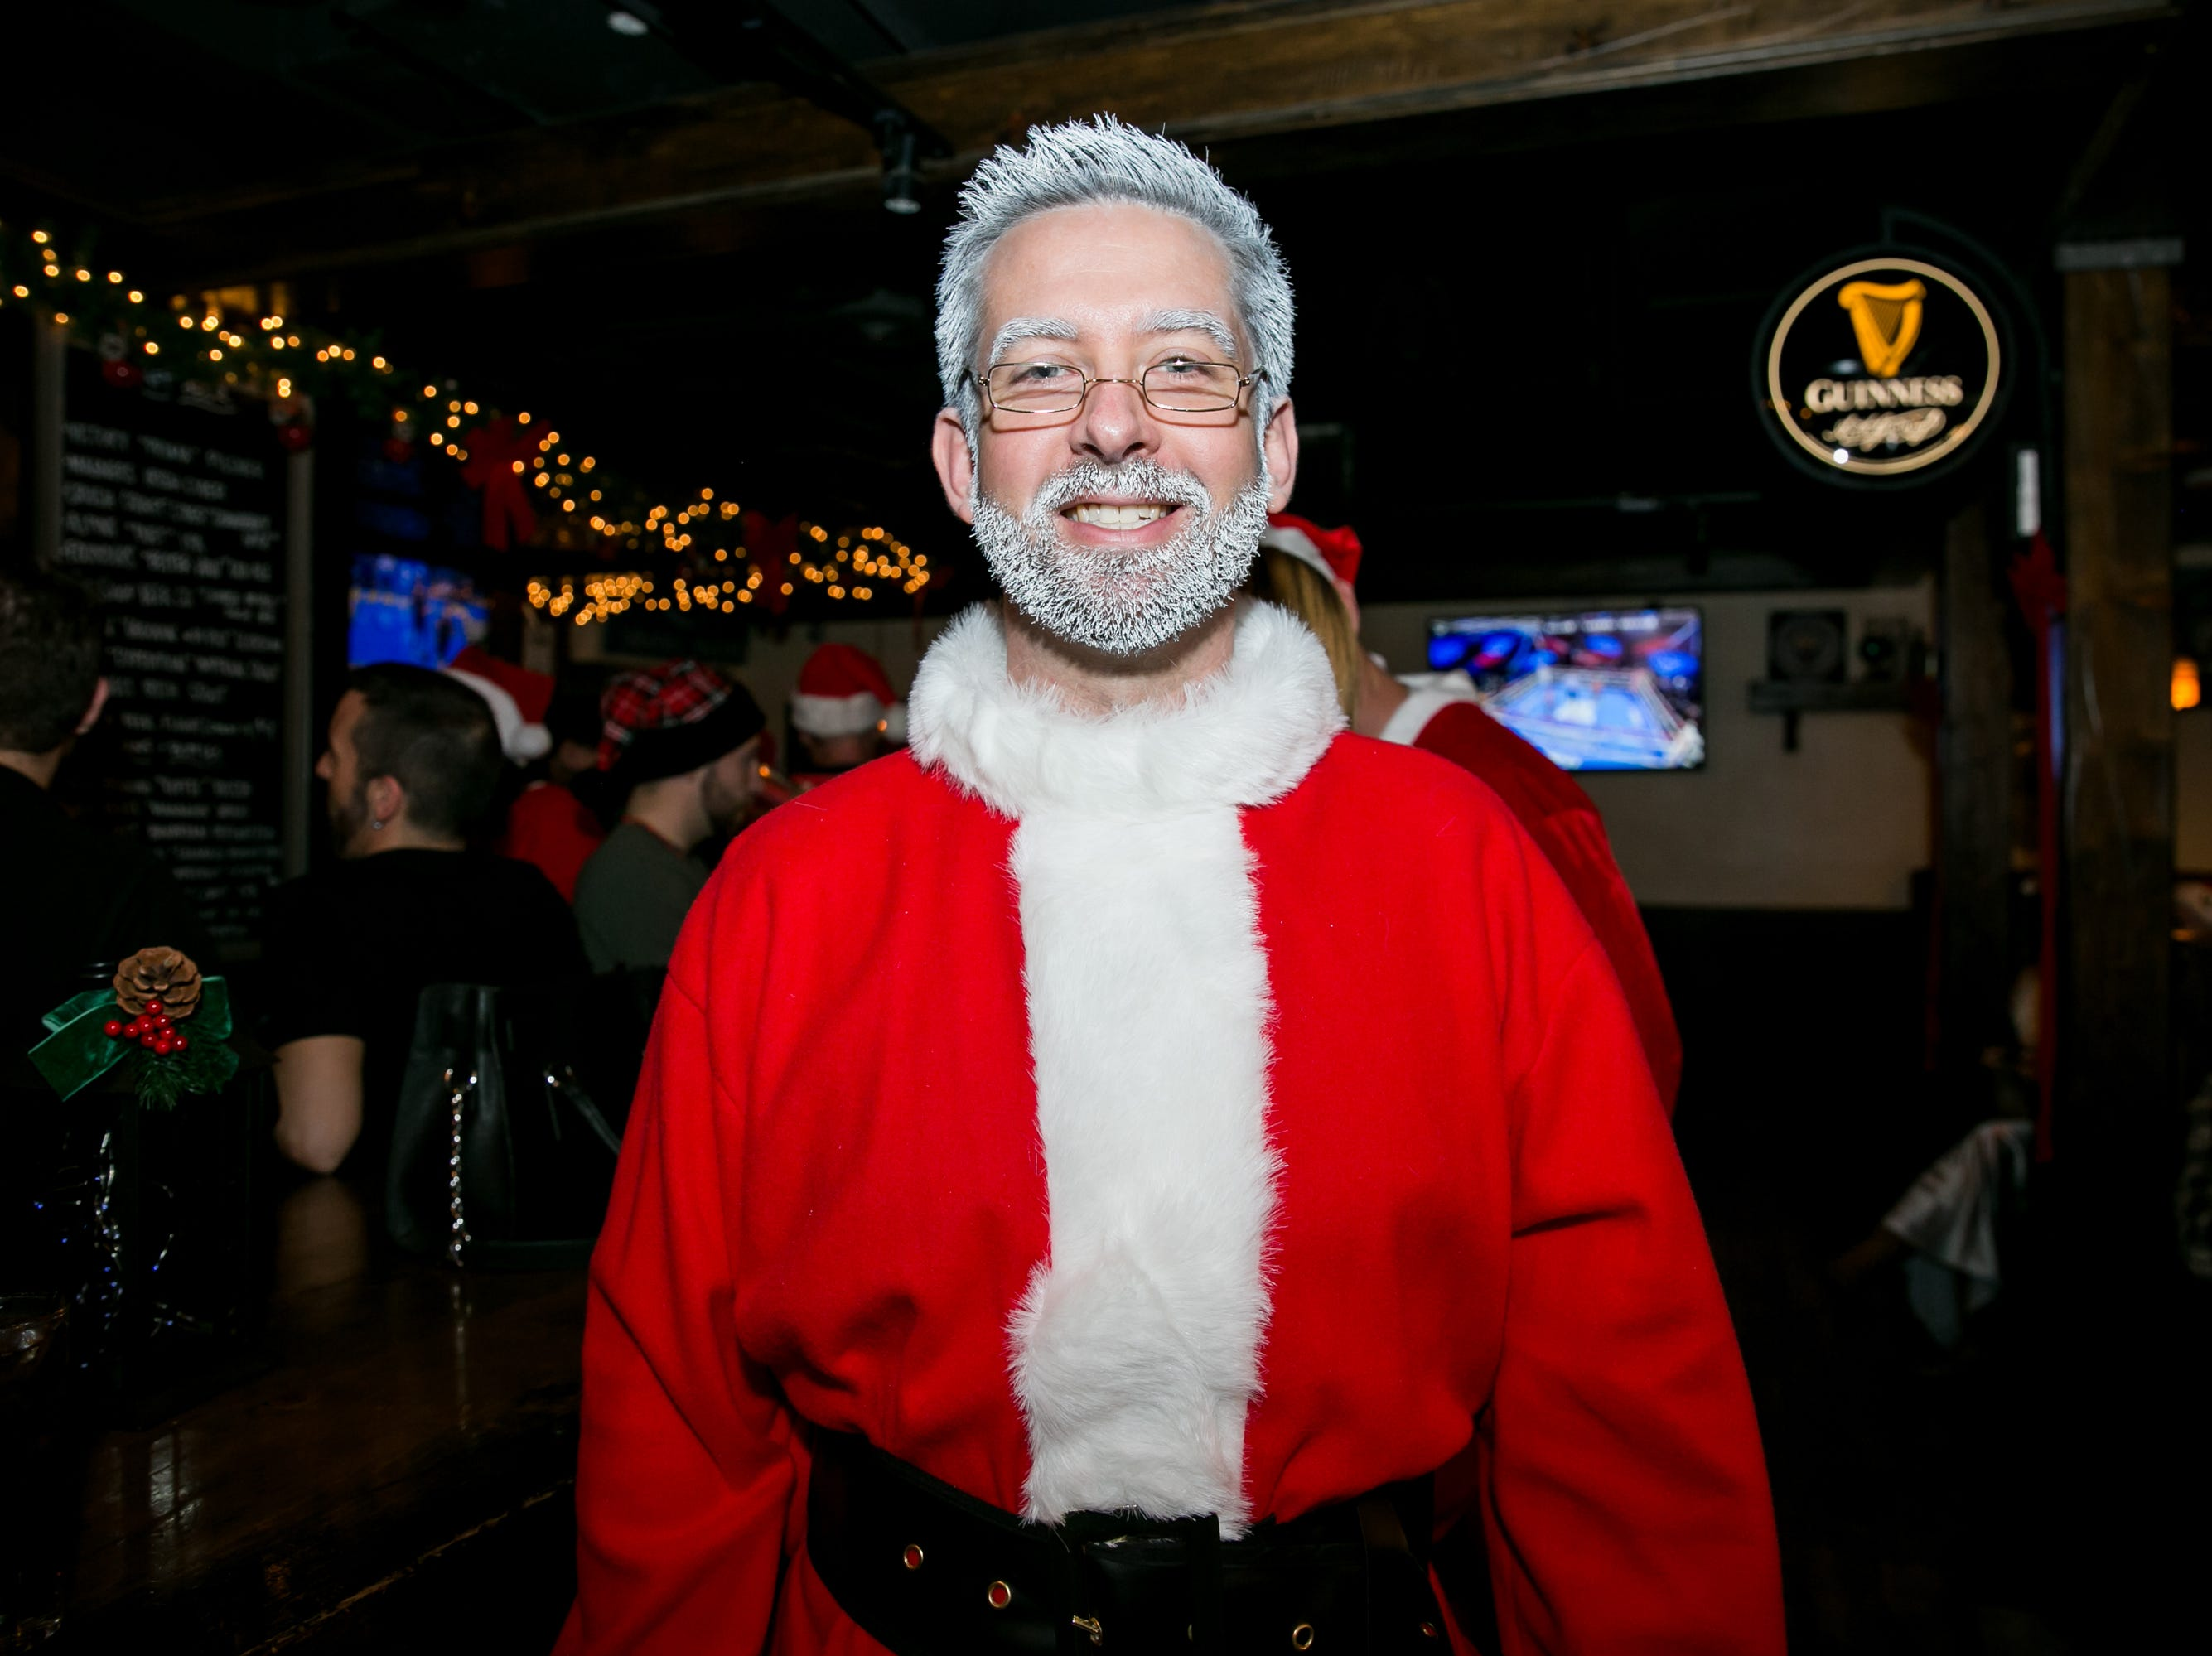 This Santa's hair and beard looked awesome during Santarchy on Saturday, December 8, 2018.